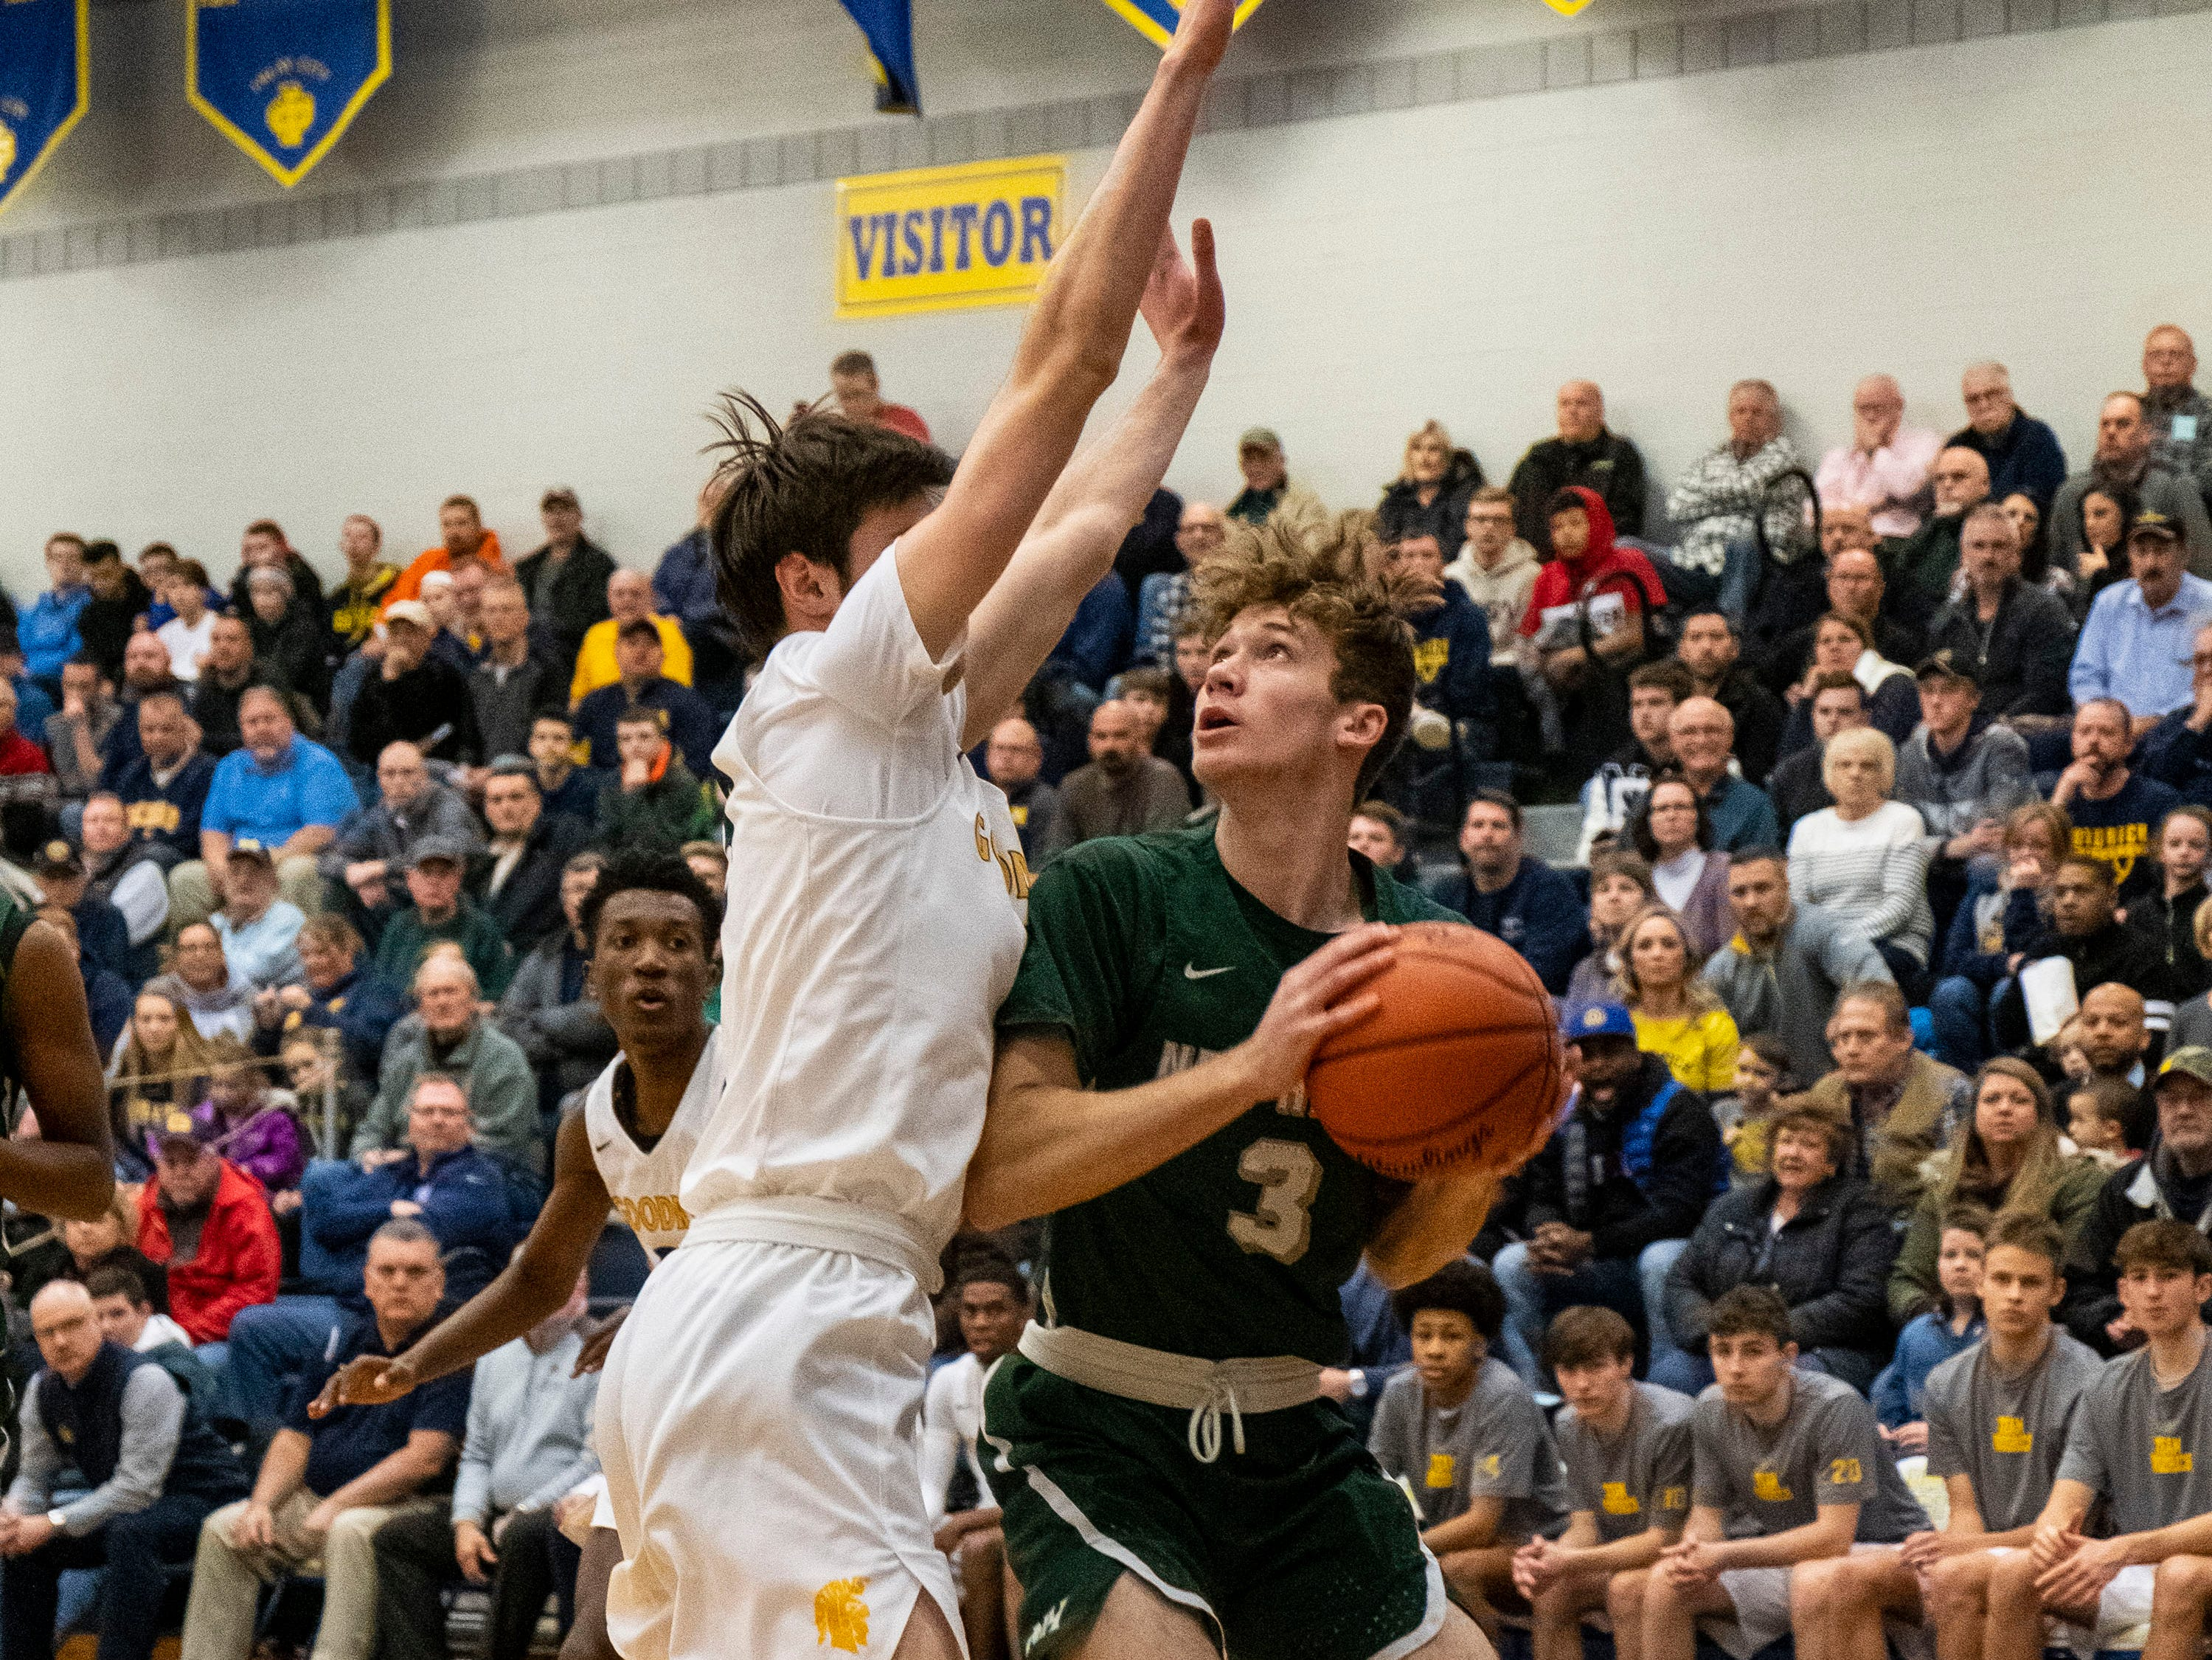 Goodrich HIgh School's Mason Vitale (left) defends against New Haven's Brent Wiles in the MHSAA District 2 basketball regionals Tuesday, March 5, 2019 at Imlay City High School.